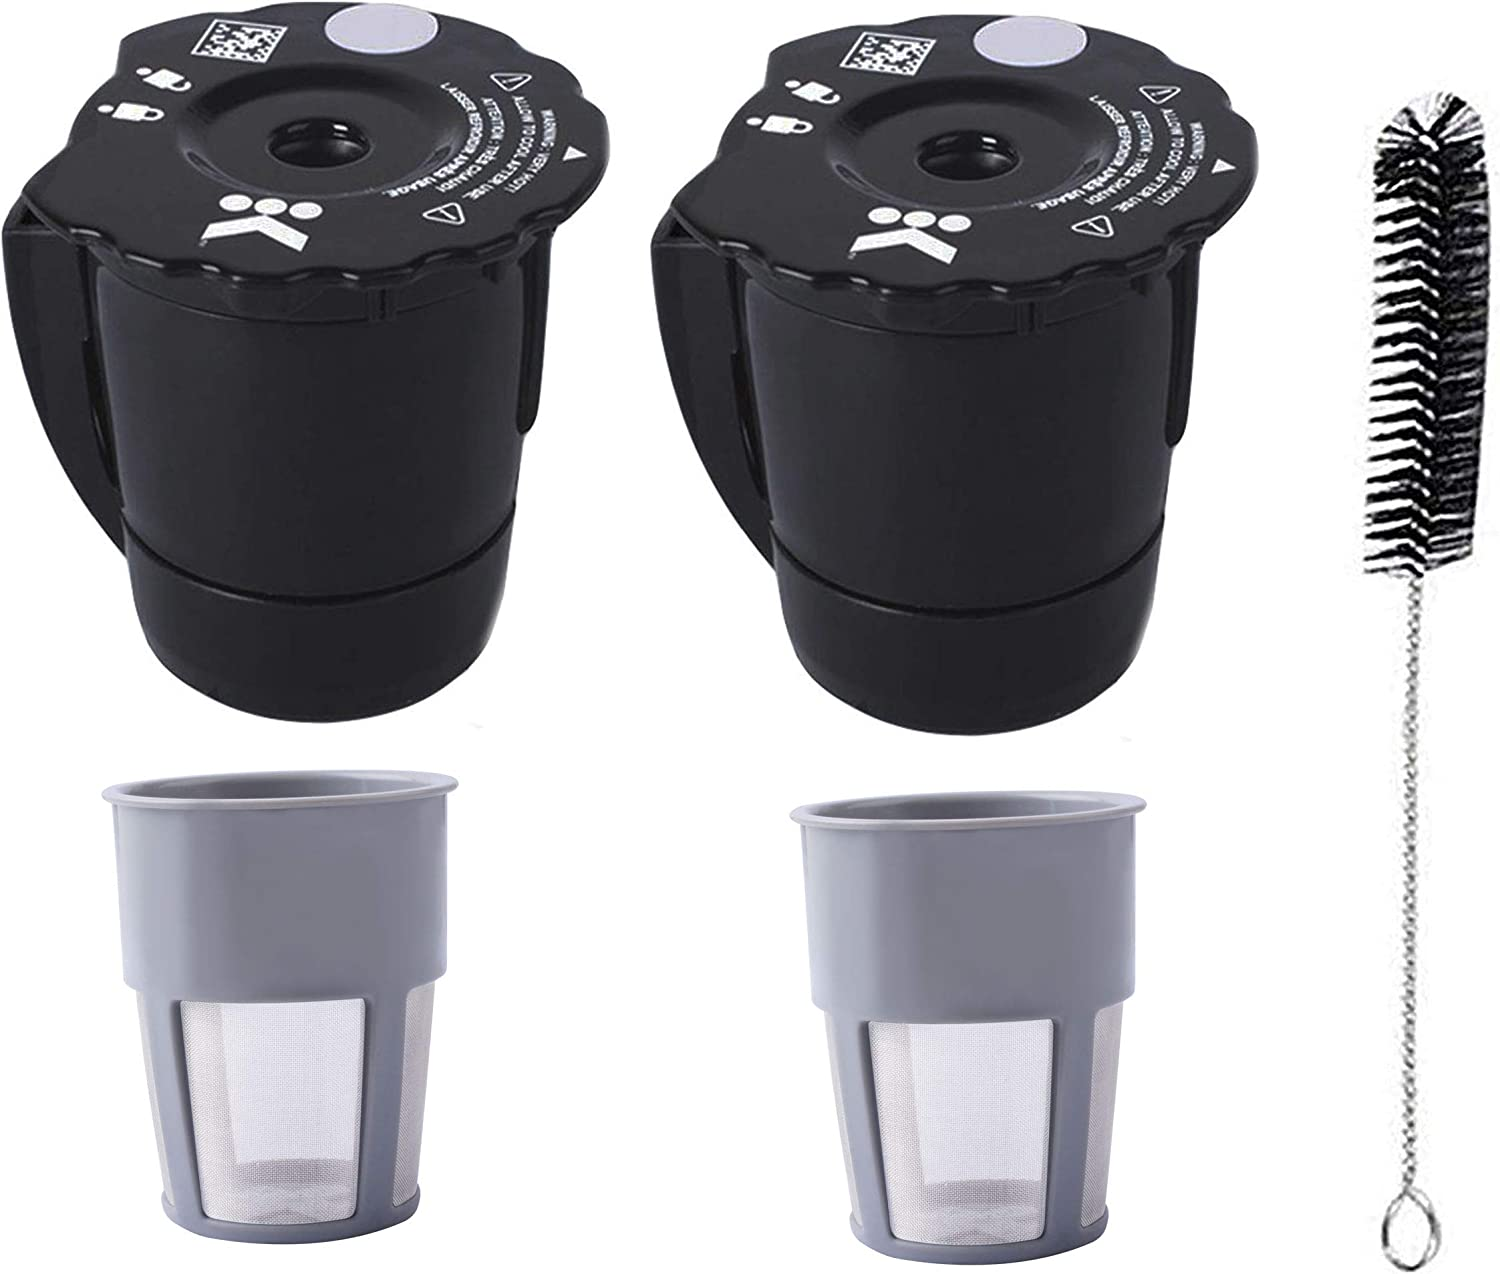 Universal Reusable Coffee Filter Compatible with Keurig My K Cup 2.0 K300 K250 K350 K375 K400 K450 K475 Coffee Makers with Extra Filter Pod Cleaning Brush